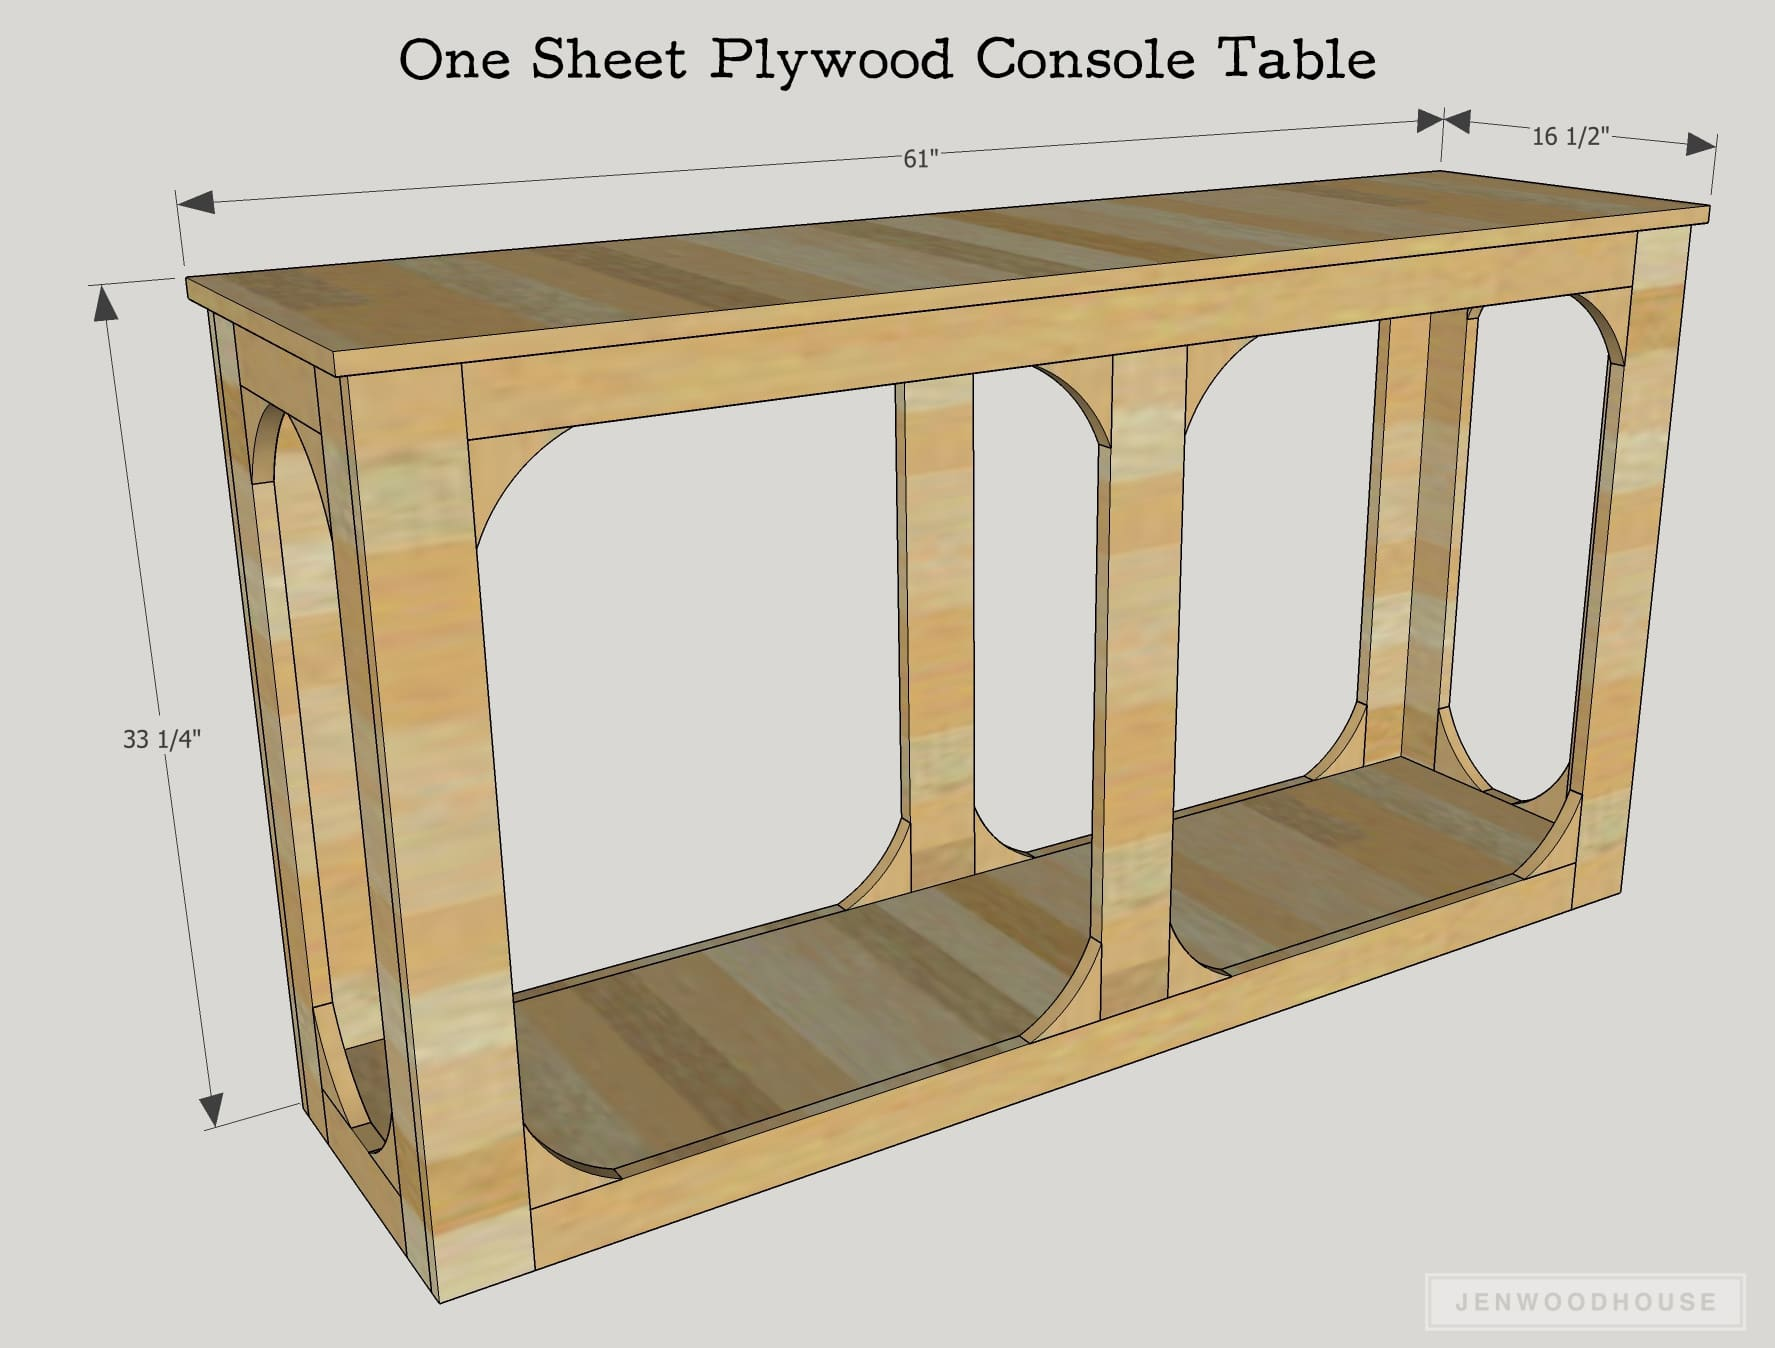 How to build a DIY console table out of one sheet of plywood. Free plans by Jen Woodhouse.